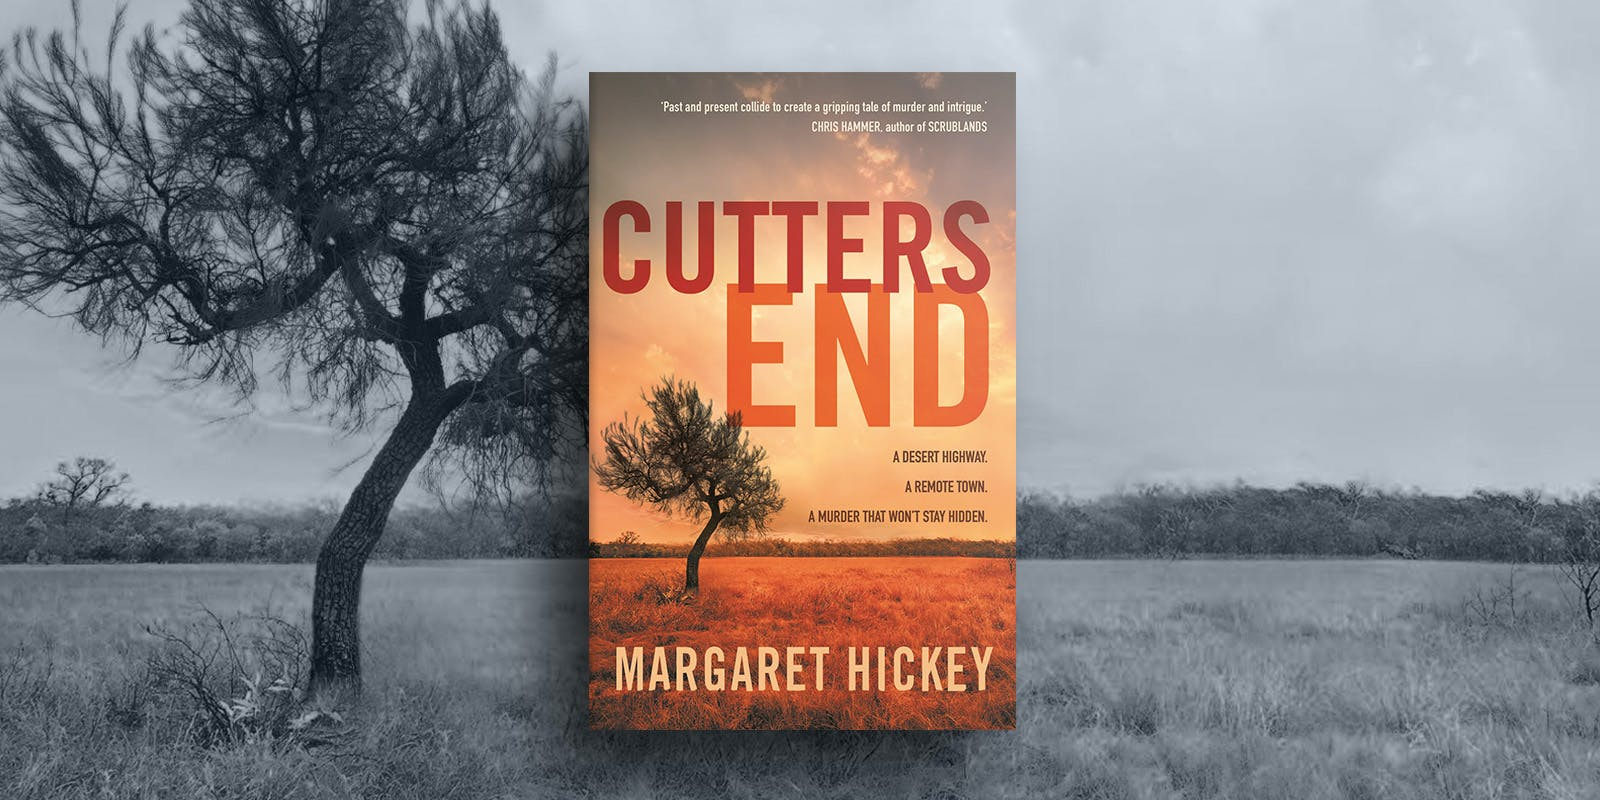 Cutters End book club notes